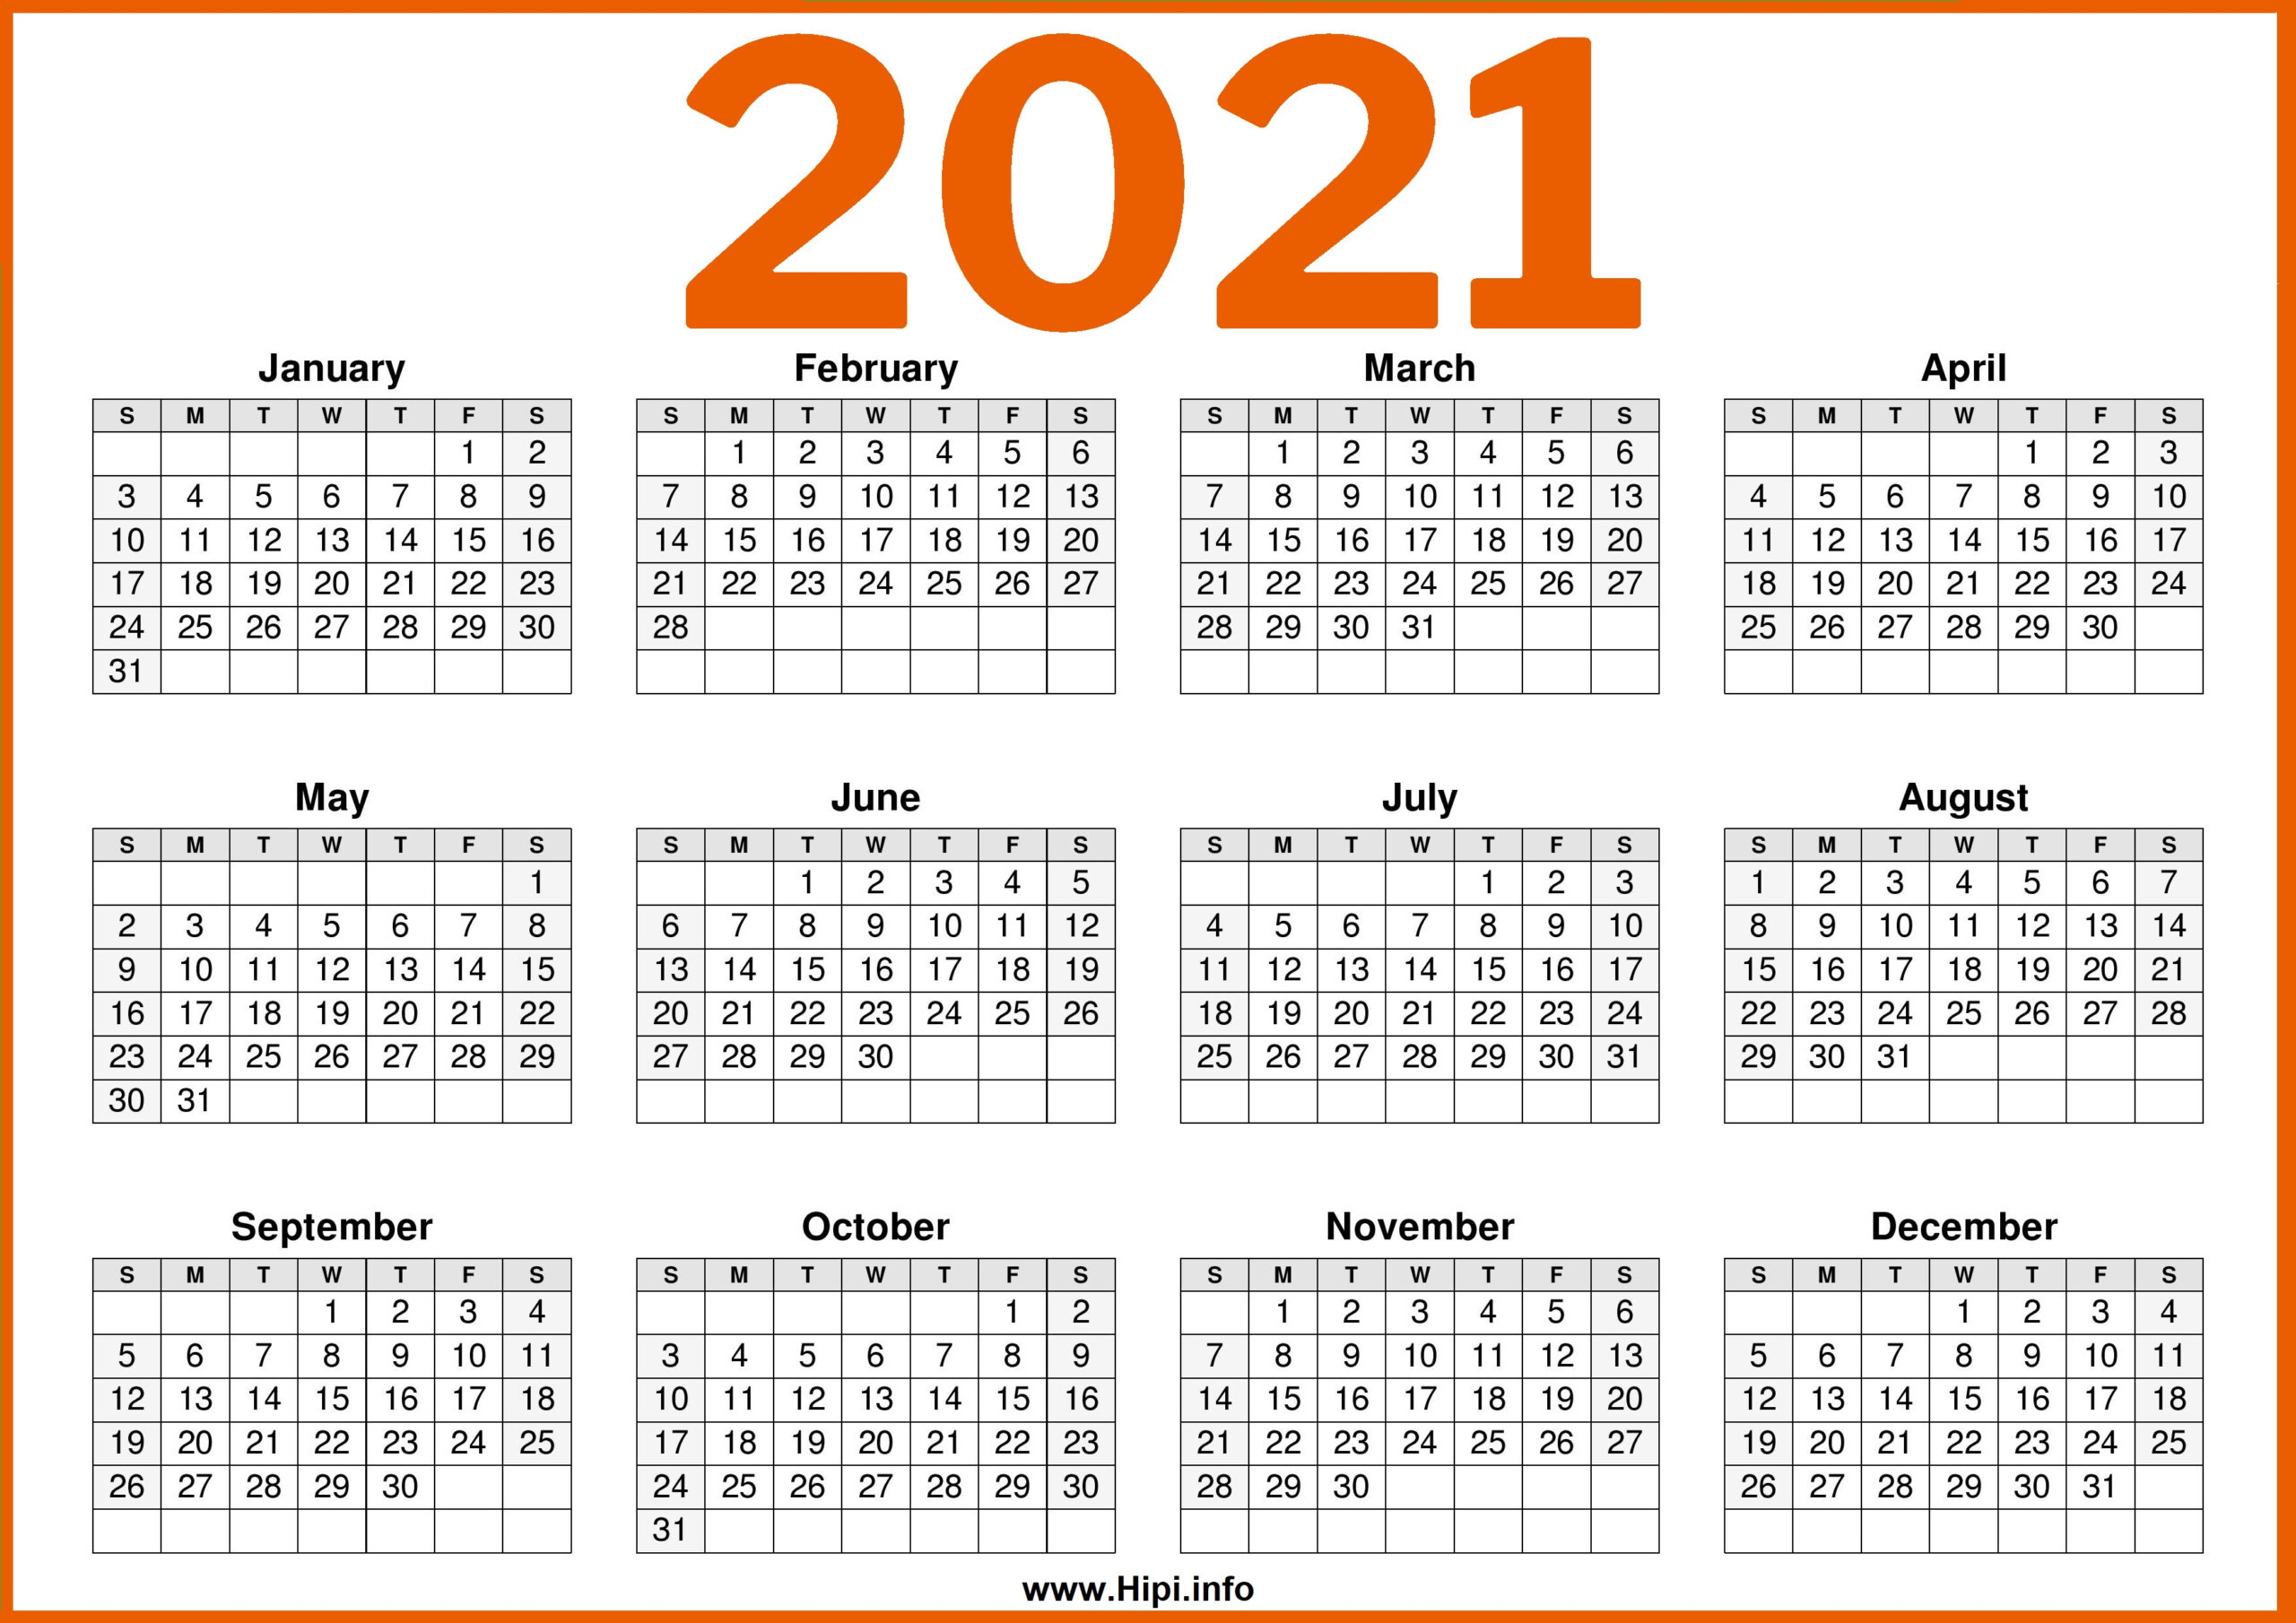 Free Printable 12 Month Calendar 2021   Printable-Free Print 2021 Calendars Without Downloading